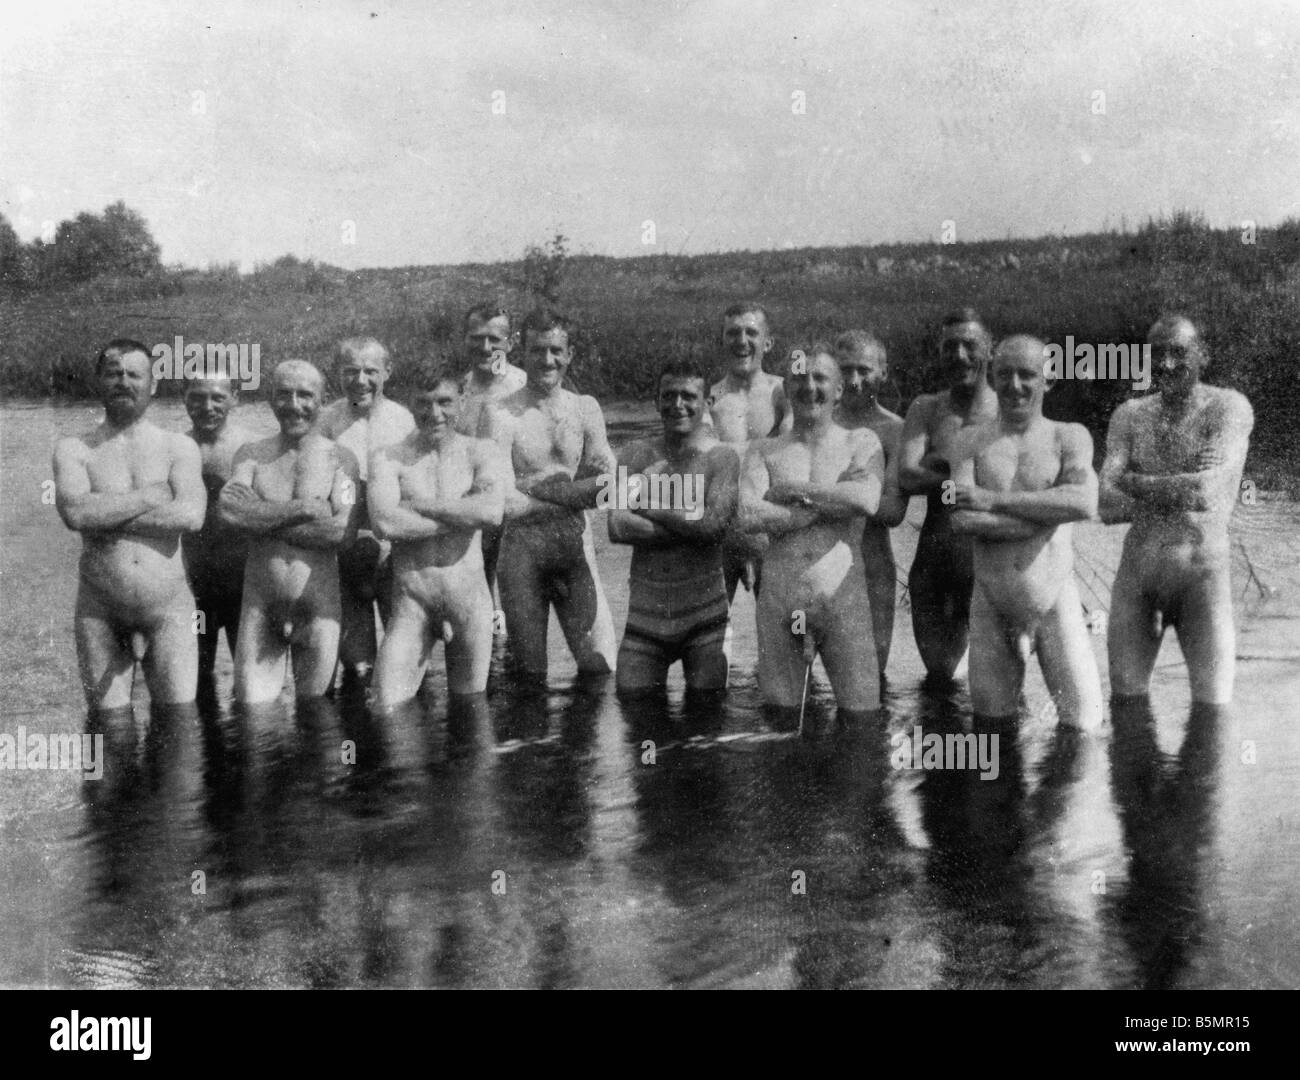 9 1916 7 0 A1 E East Fr Pic of soldiers bath Pho World War 1 Eastern Front Group picture of soldiers bathing in - Stock Image